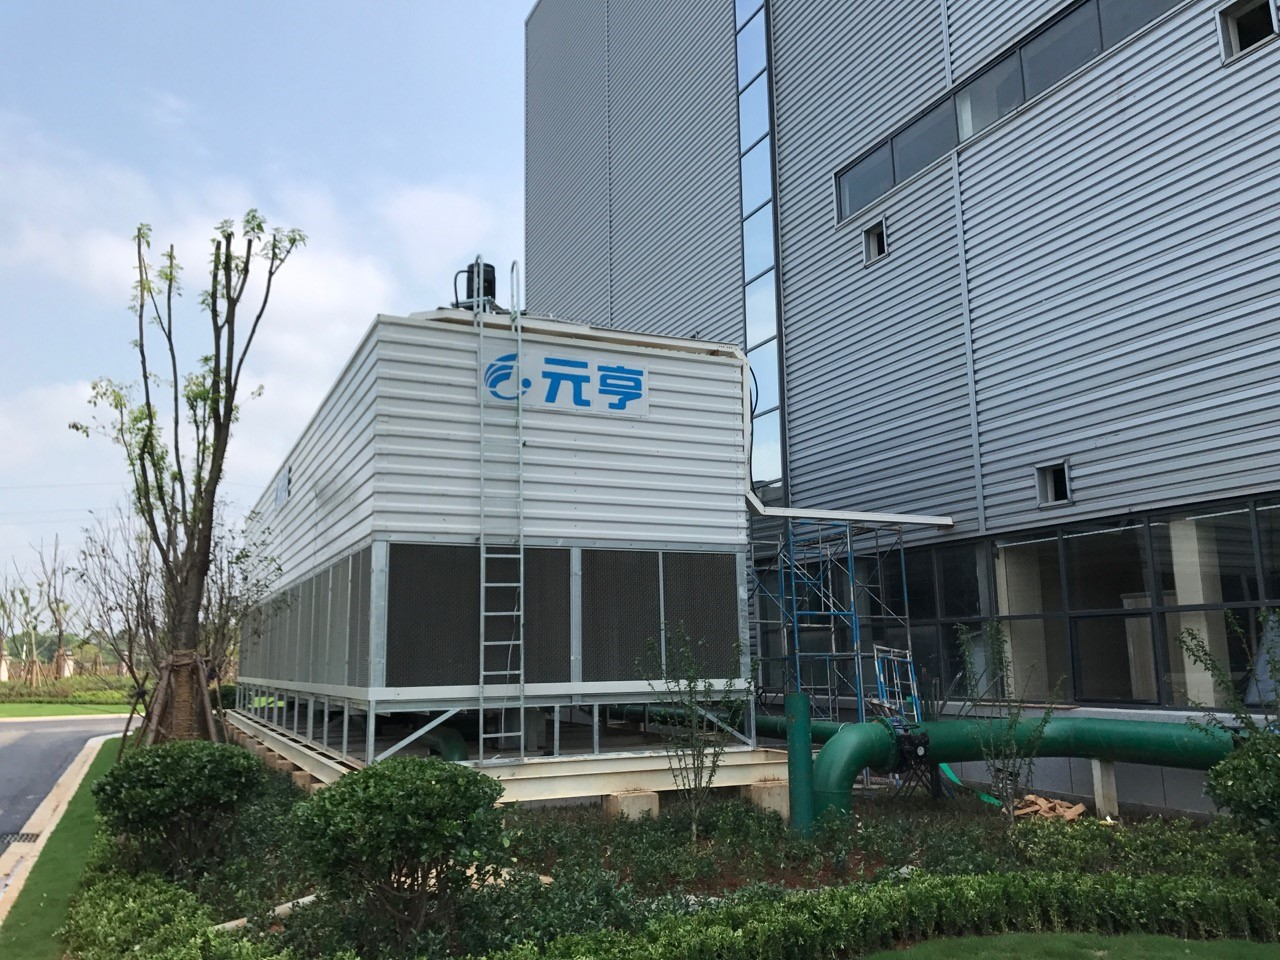 High quality FRP Casing Counter flow Cooling Tower Quotes,China well-know professional FRP Casing Counter flow Cooling Tower Factory,your best choice FRP Casing Counter flow Cooling Tower Purchasing